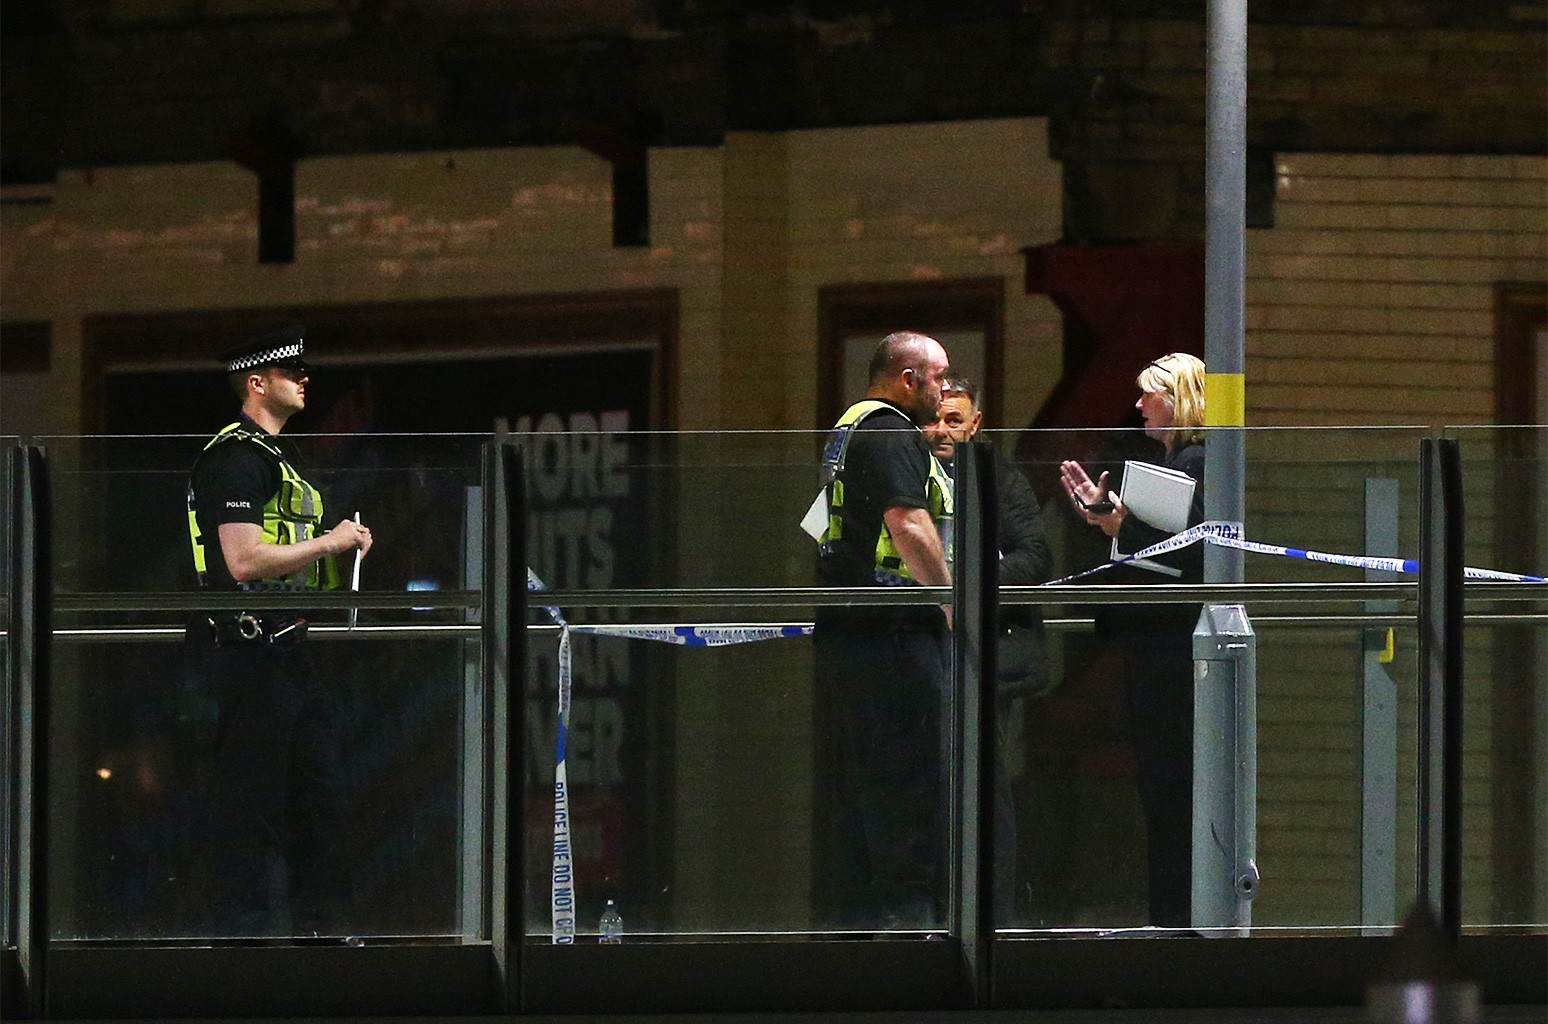 Police cordon off an area close to the Box Office entrance to the Manchester Arena on May 23, 2017 in Manchester, England.